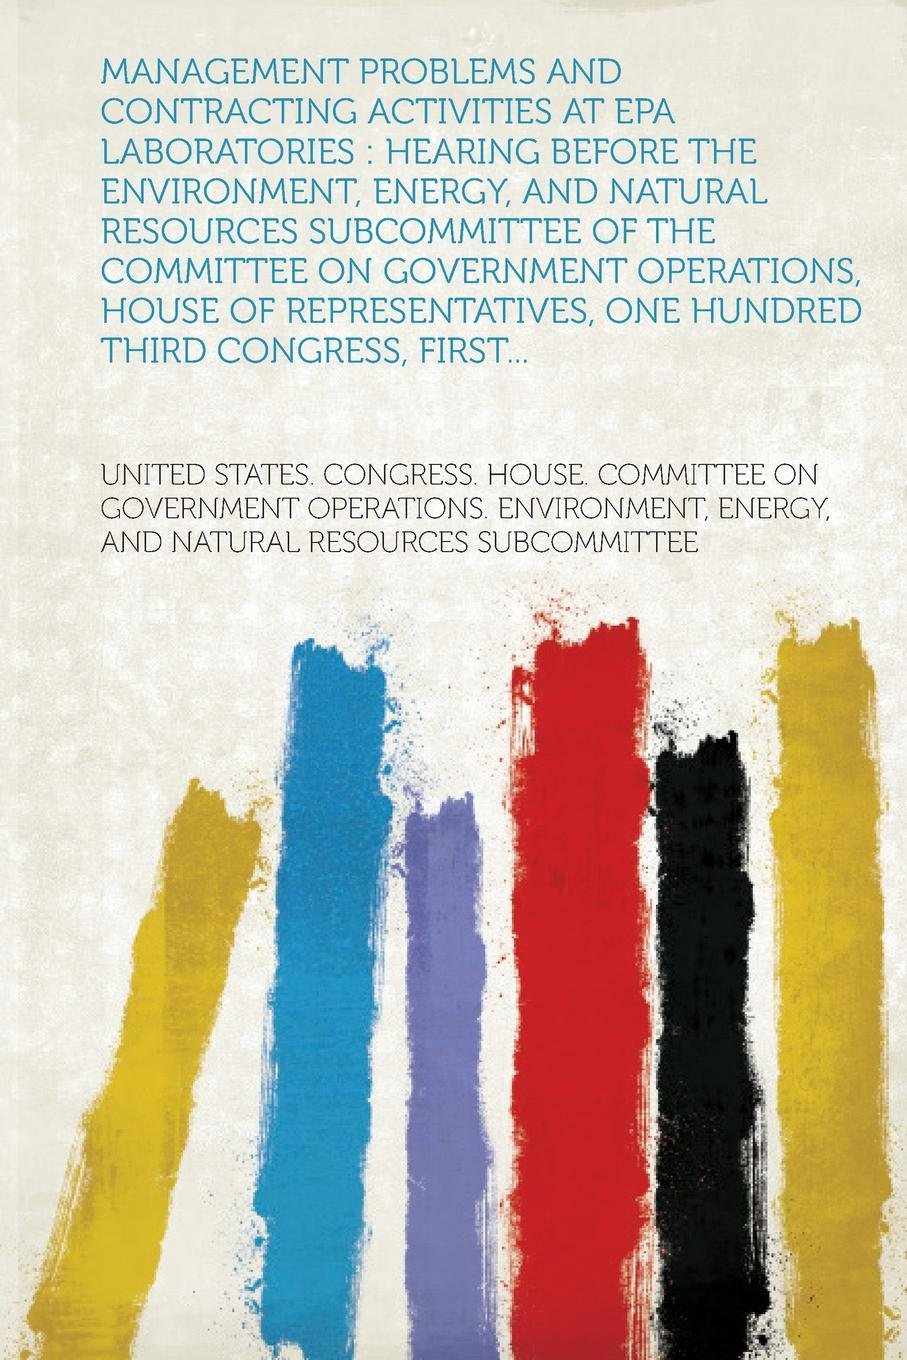 Management Problems and Contracting Activities at EPA Laboratories: Hearing Before the Environment, Energy, and Natural Resources Subcommittee of the pdf epub